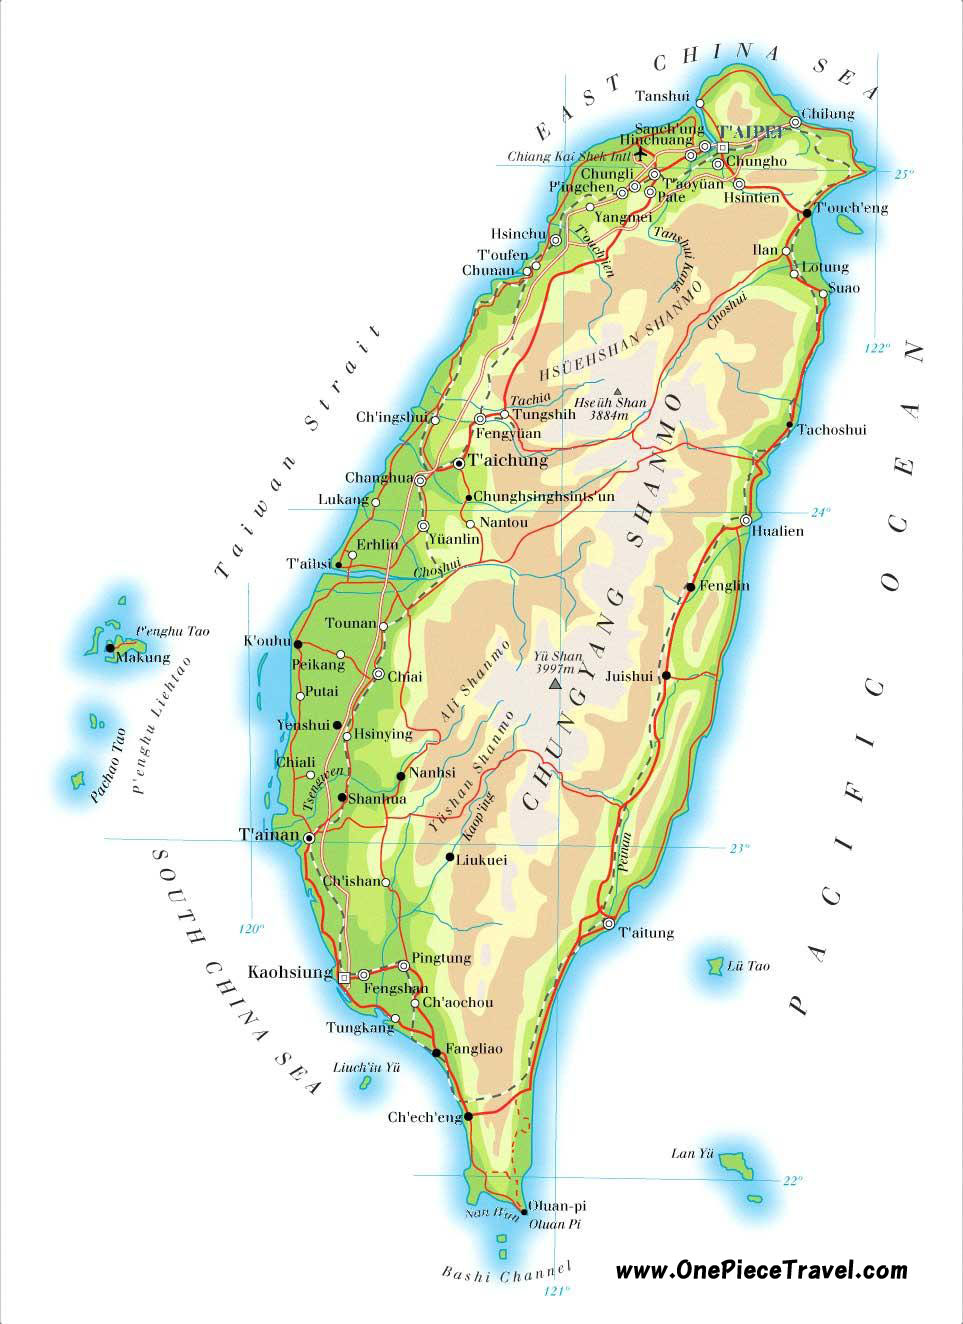 Taiwan Tourist Attractions and Travel – Tourist Attractions Map In China